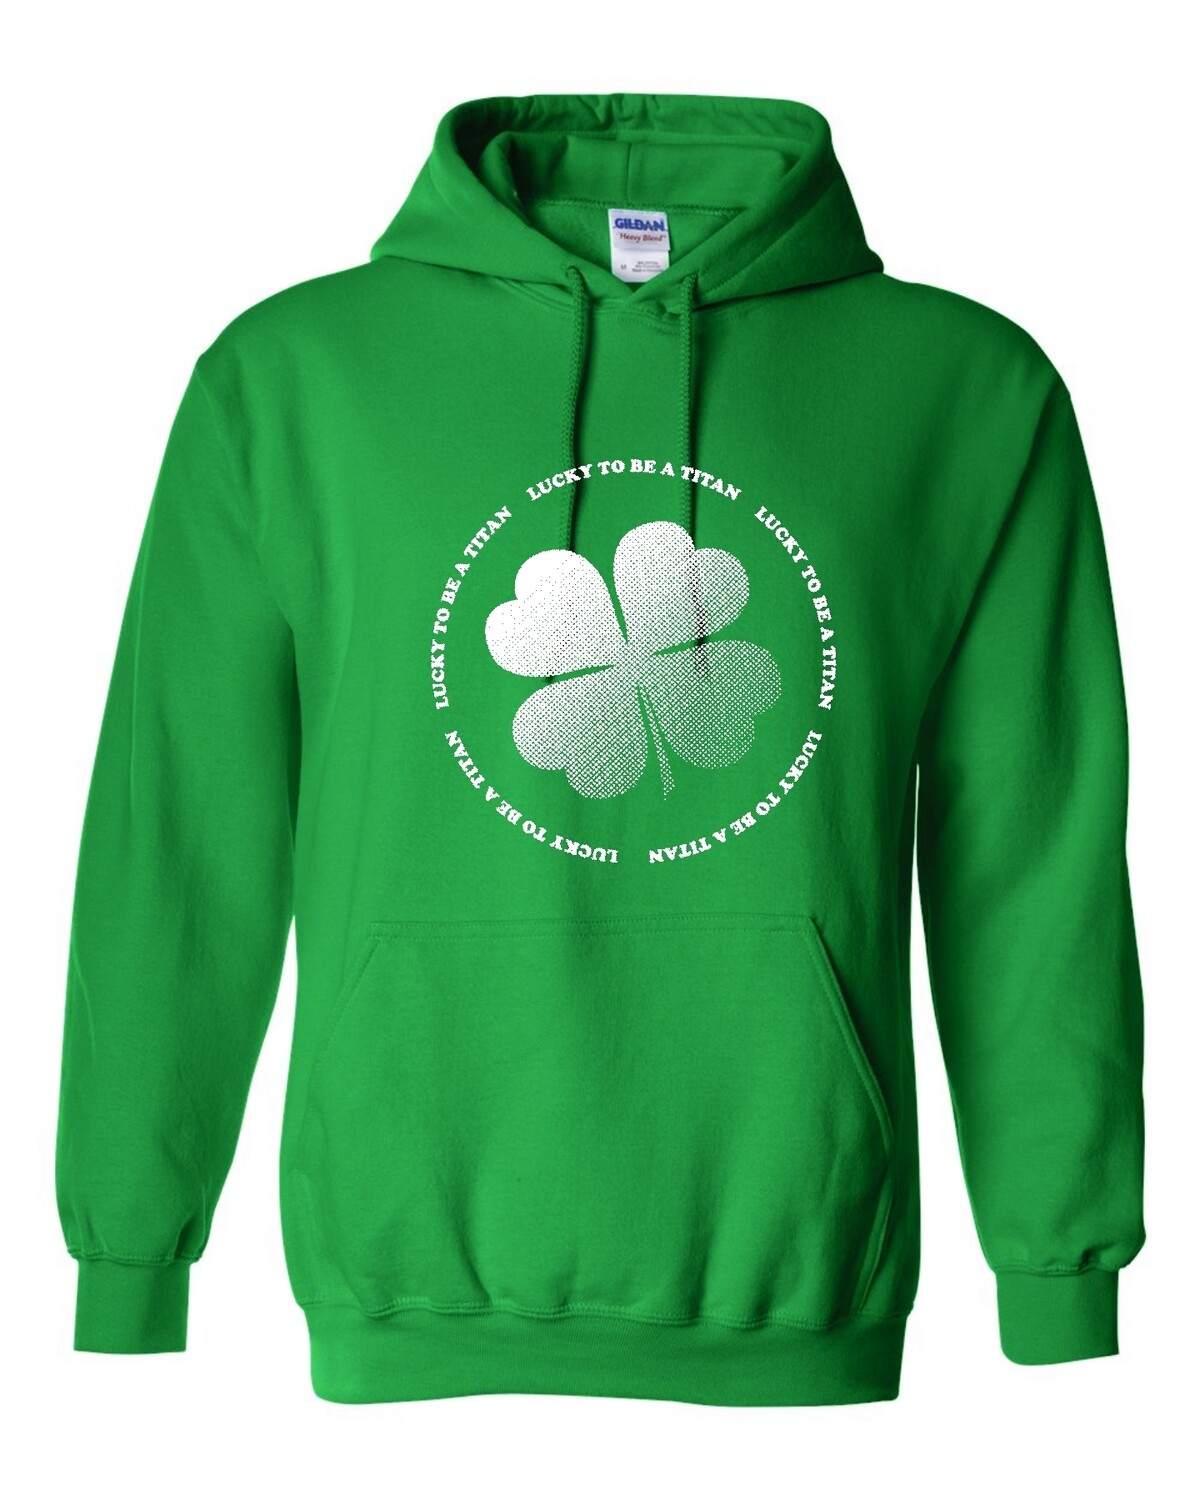 LUCKY TO BE A TITAN (PULLOVER HOODIE) 18500